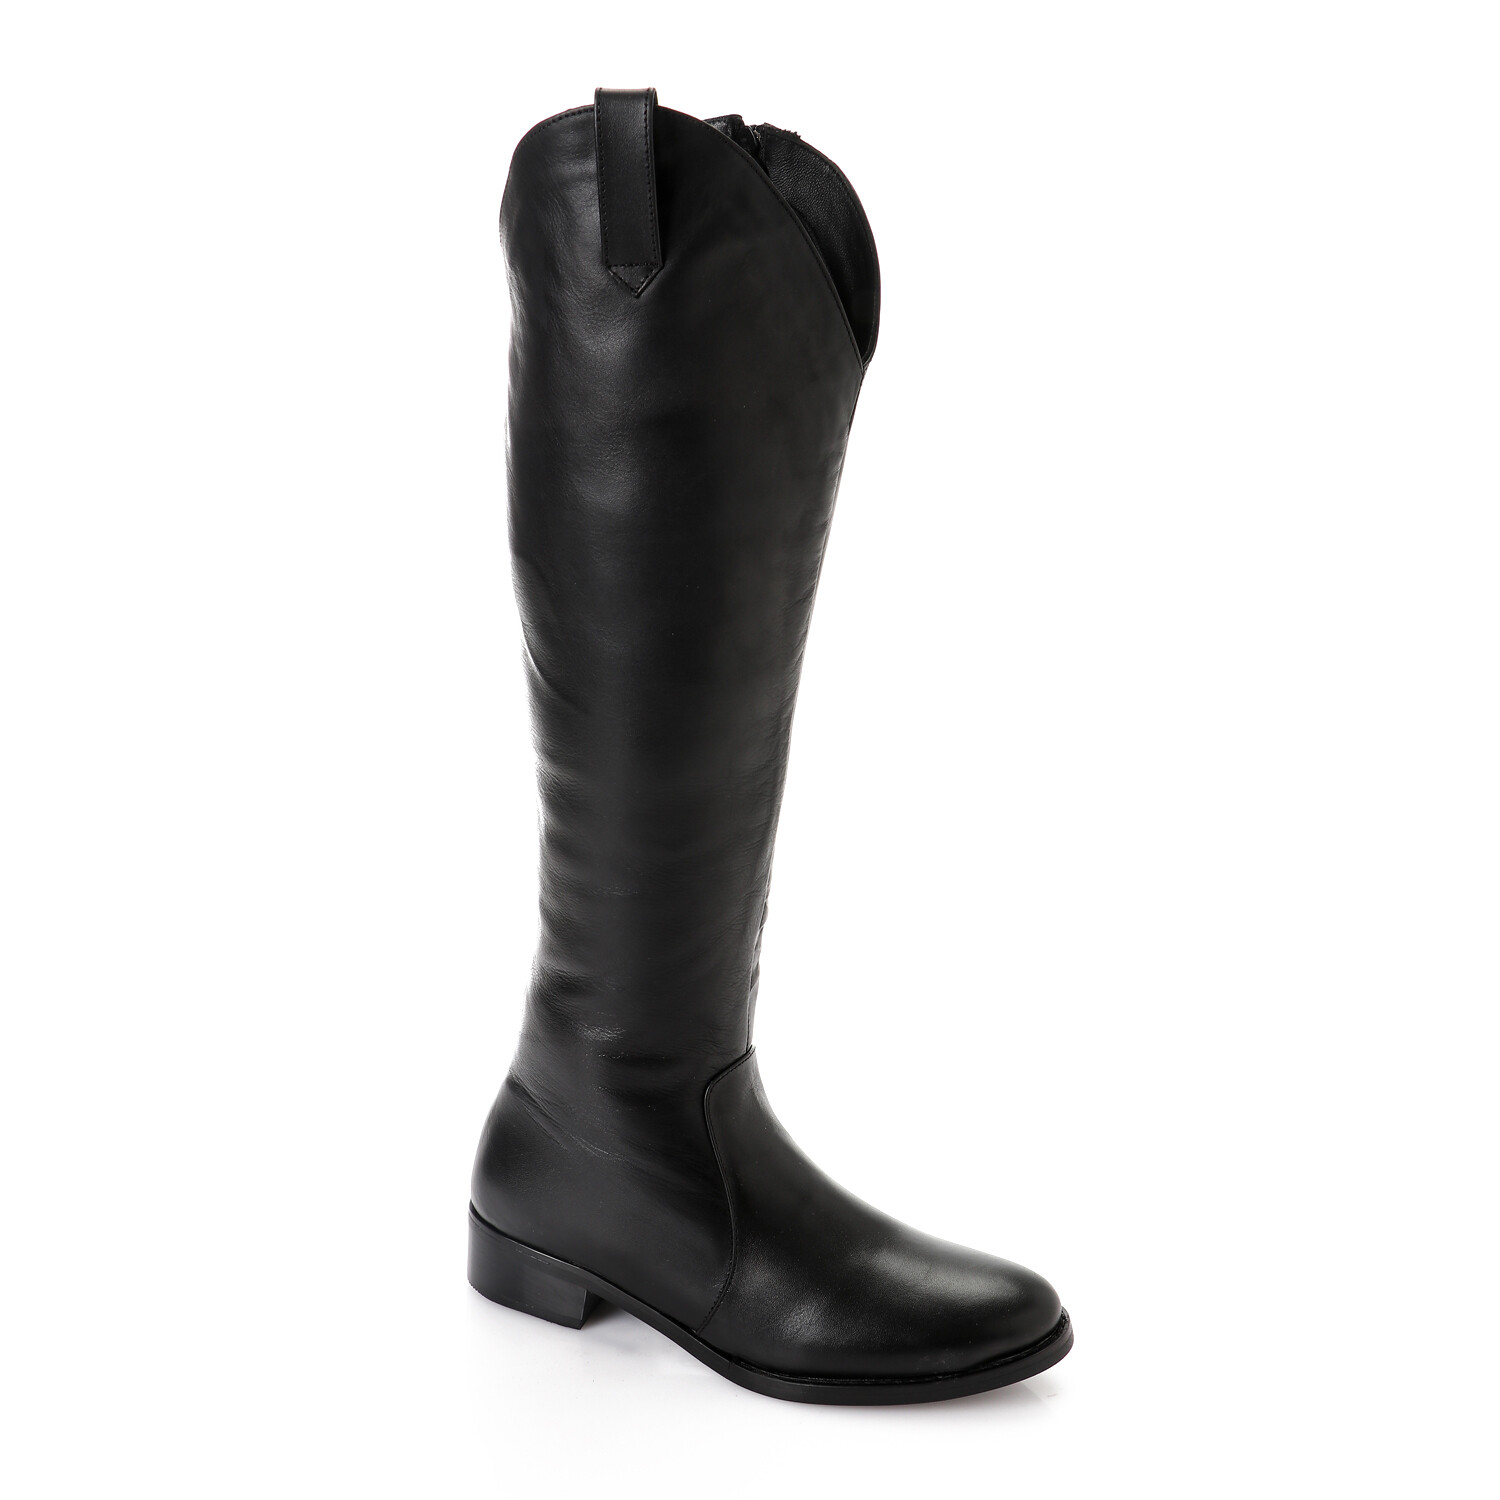 3762- Leather natural Boot - black